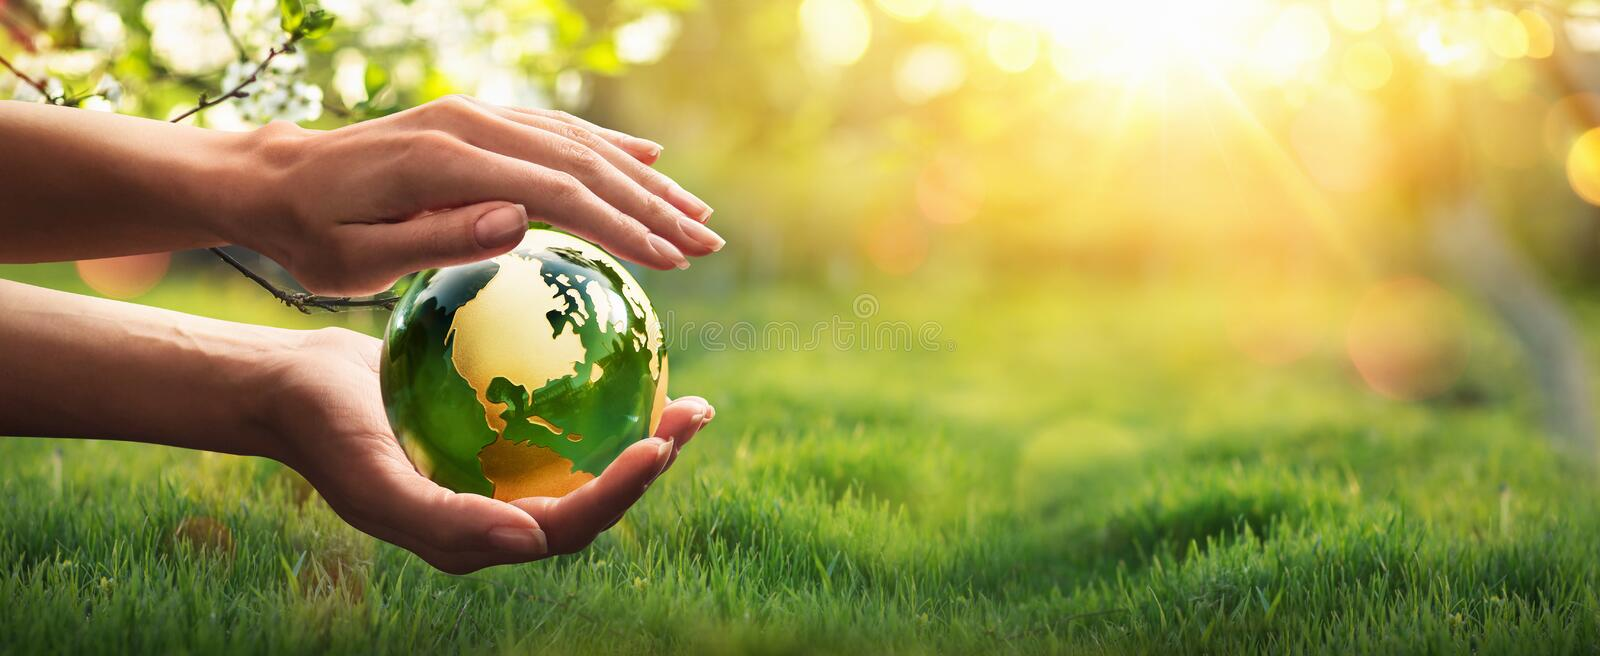 Green Planet in Your Hands. Environment Concept royalty free stock photography